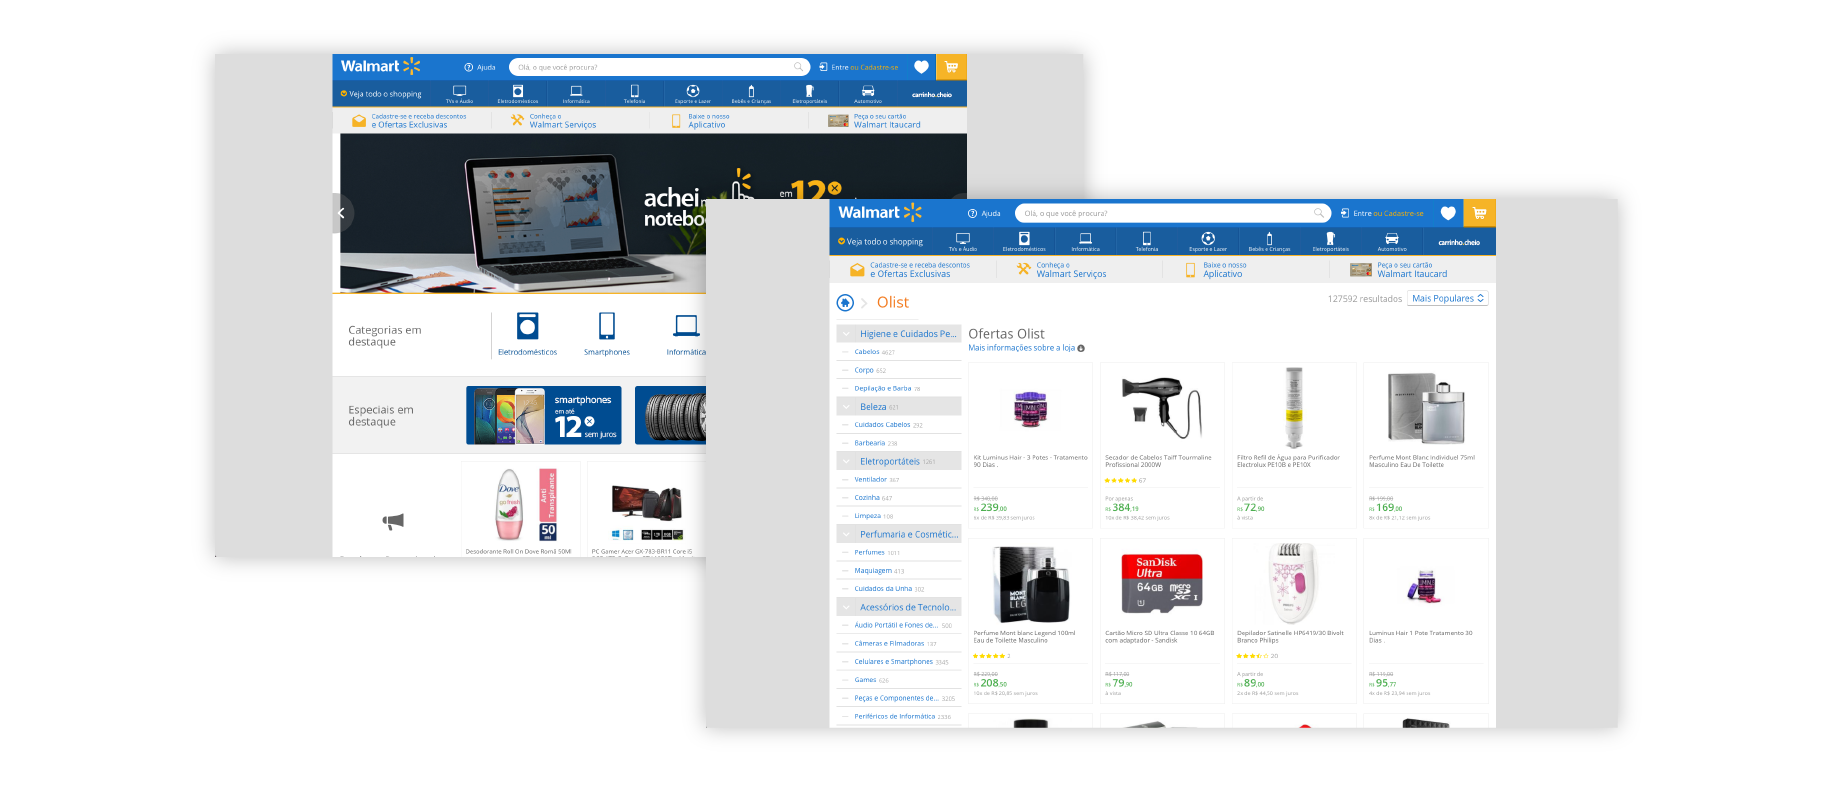 banners-site-marketplaces-walmart_Screenshots.png